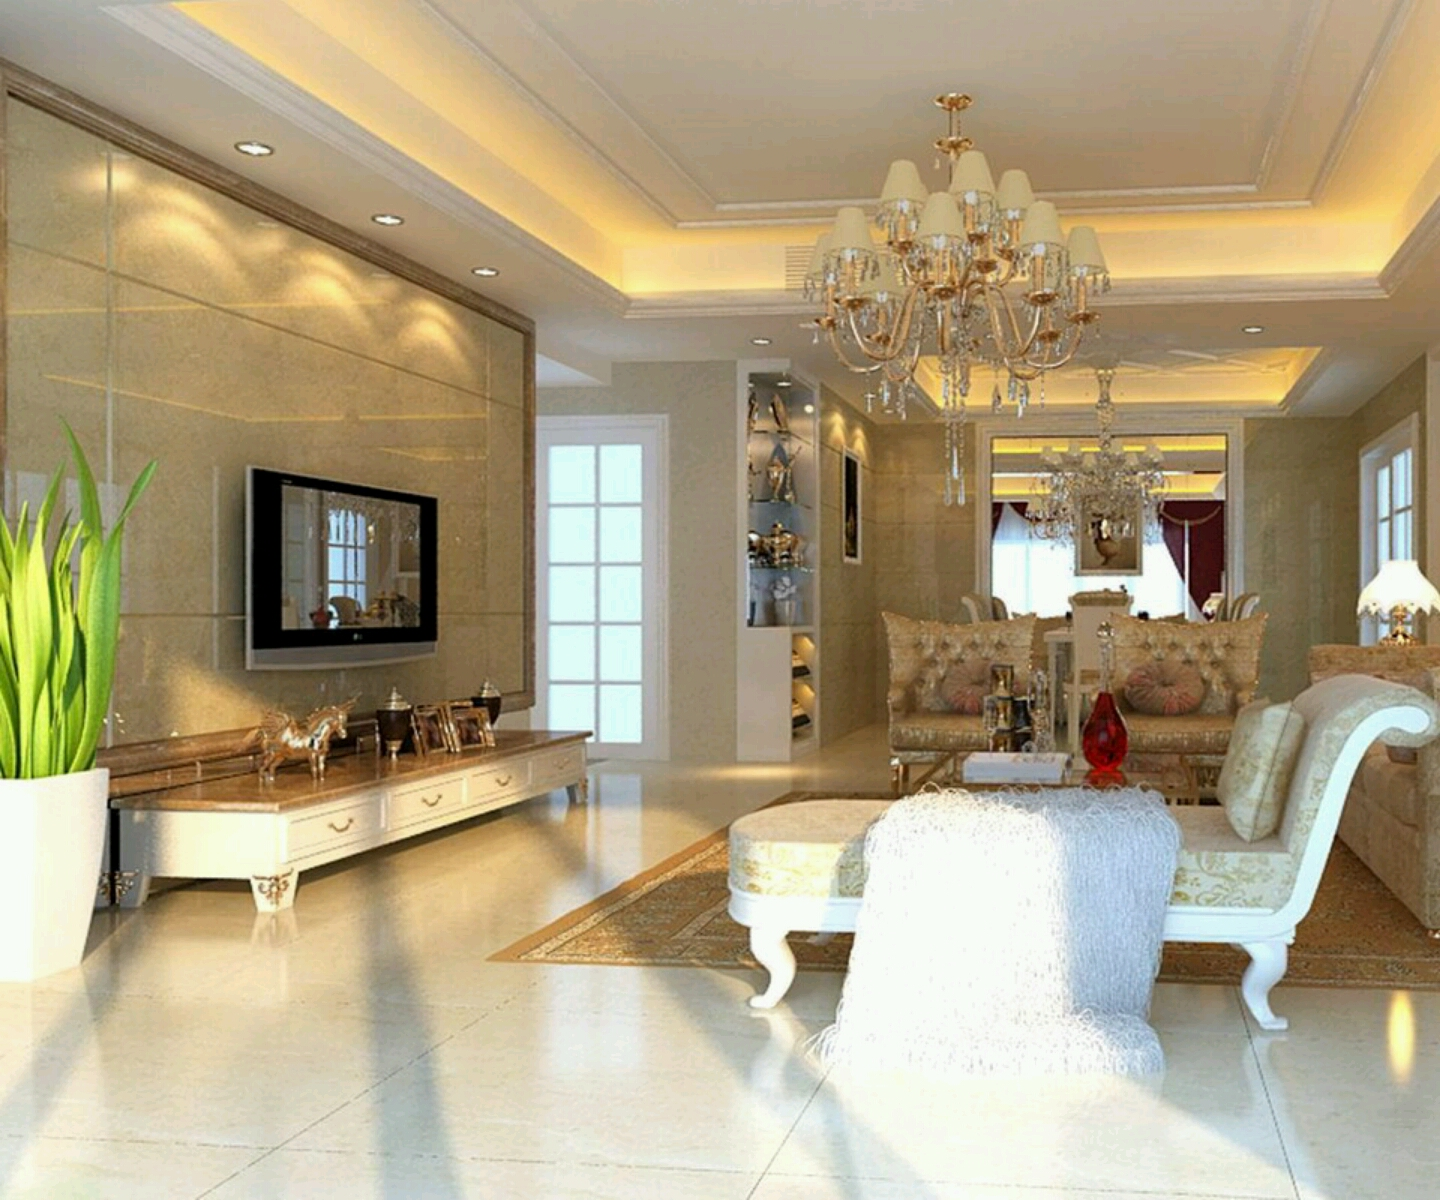 New home designs latest luxury homes interior decoration for Home interior design ideas uk